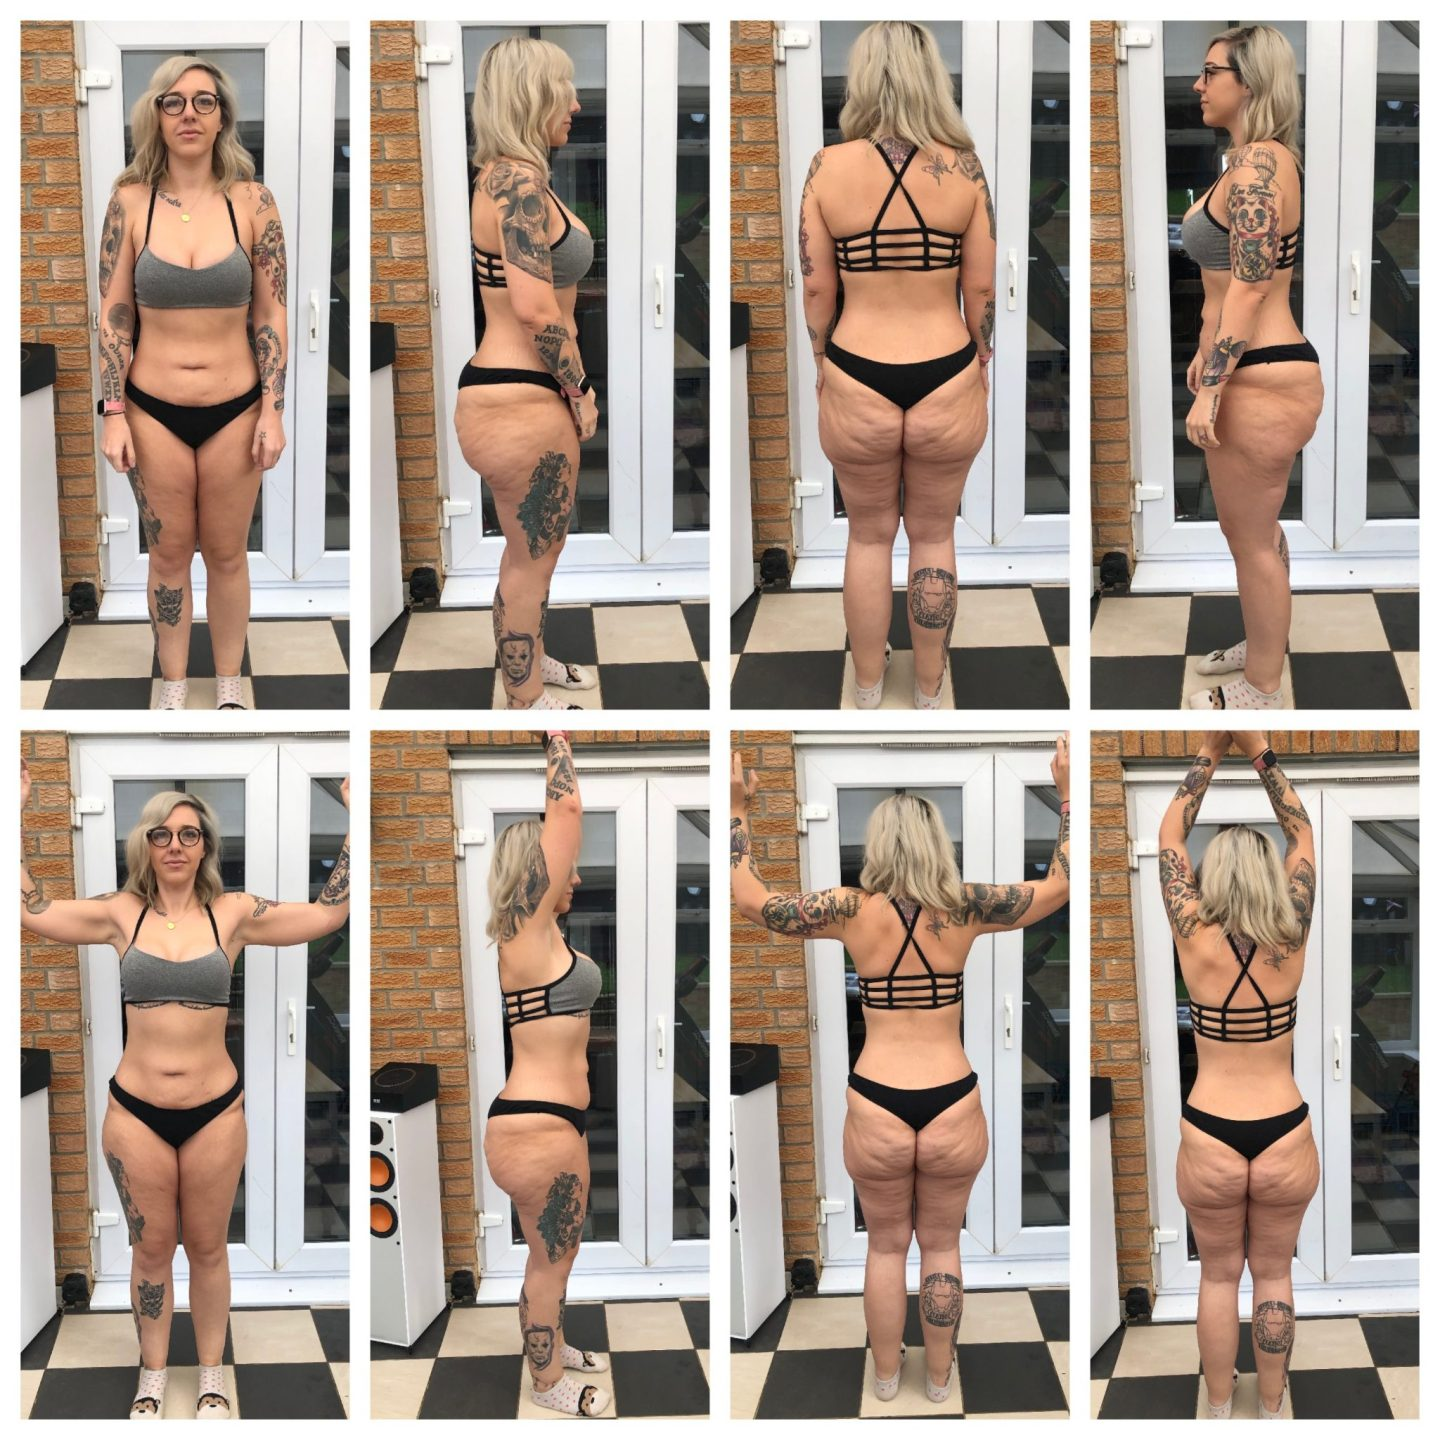 Body Physique photos - Girl standing in all angles to show current body